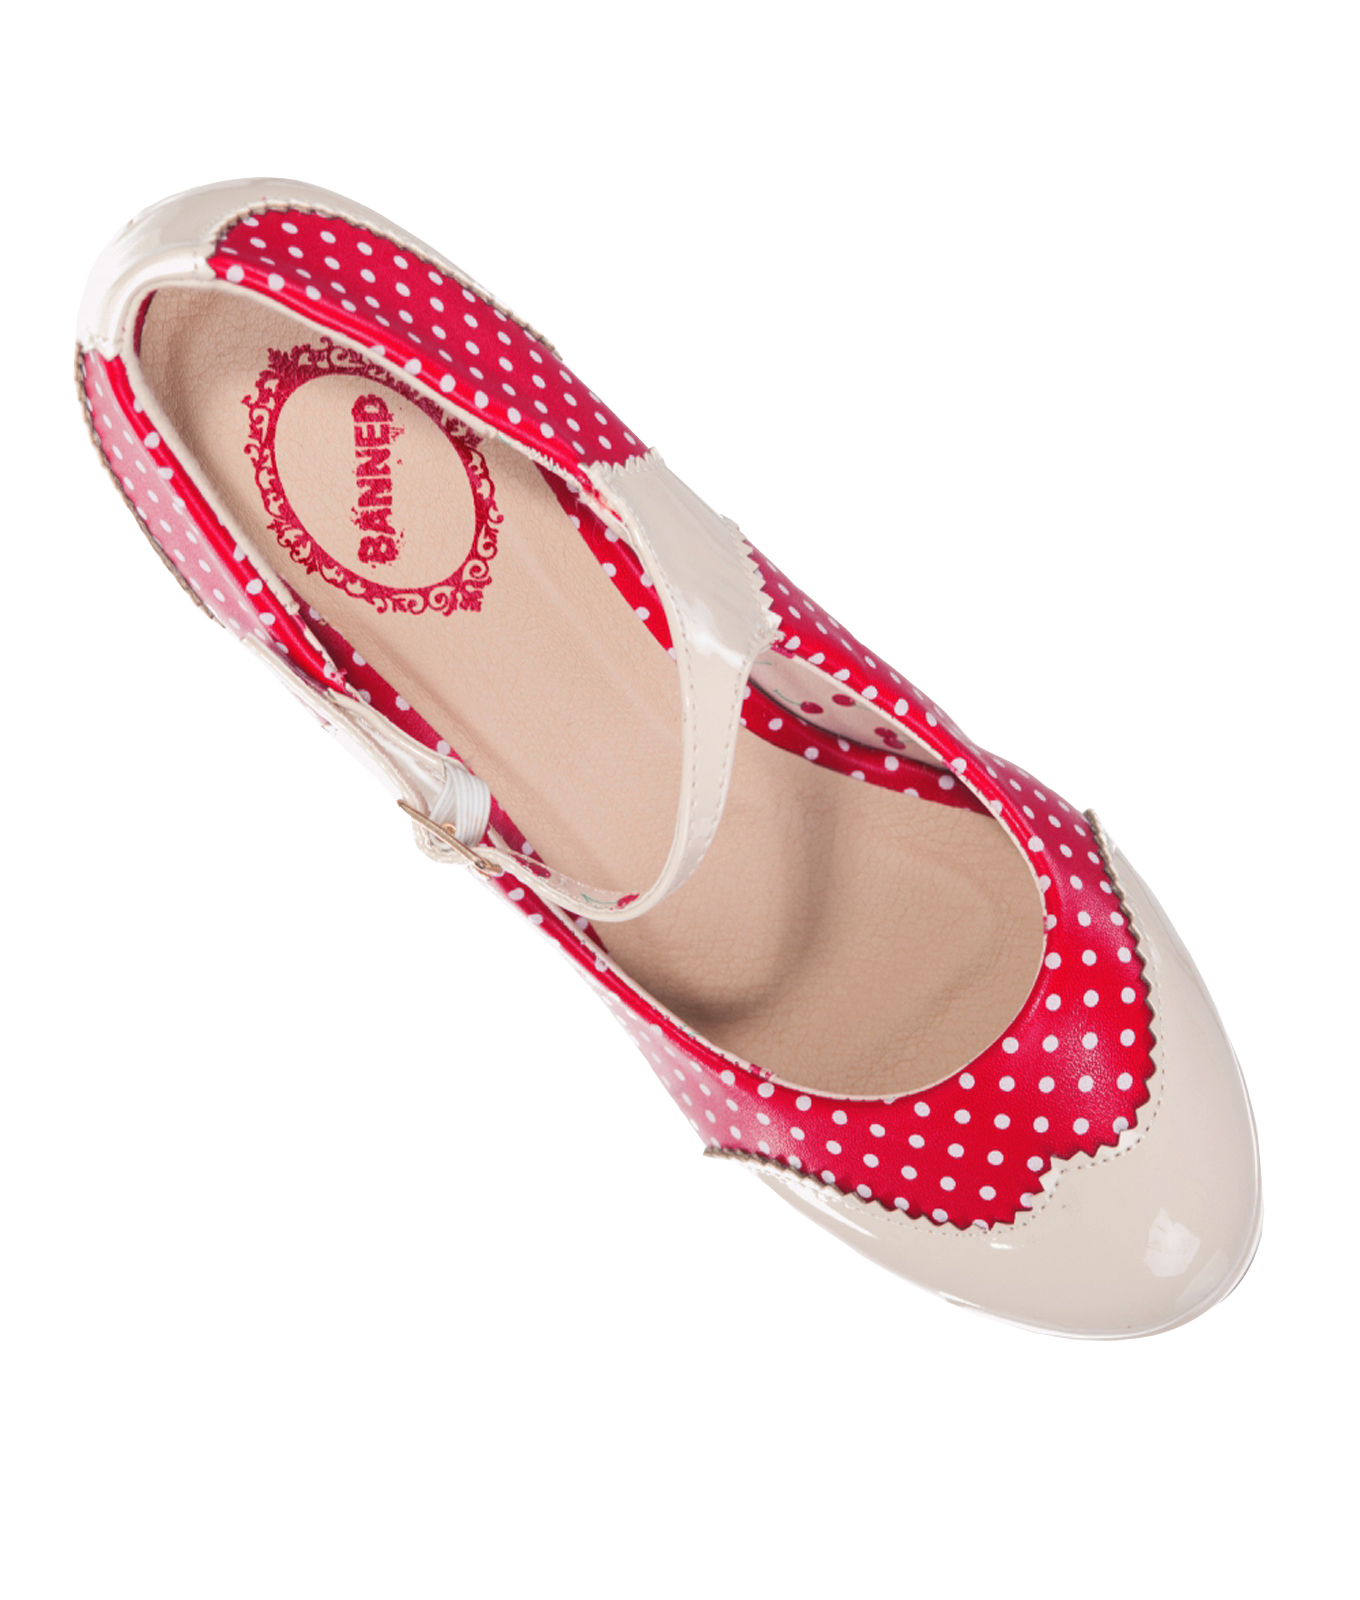 MARY JANE Shoes by Banned POLKA DOT 50s Rockabilly Heels